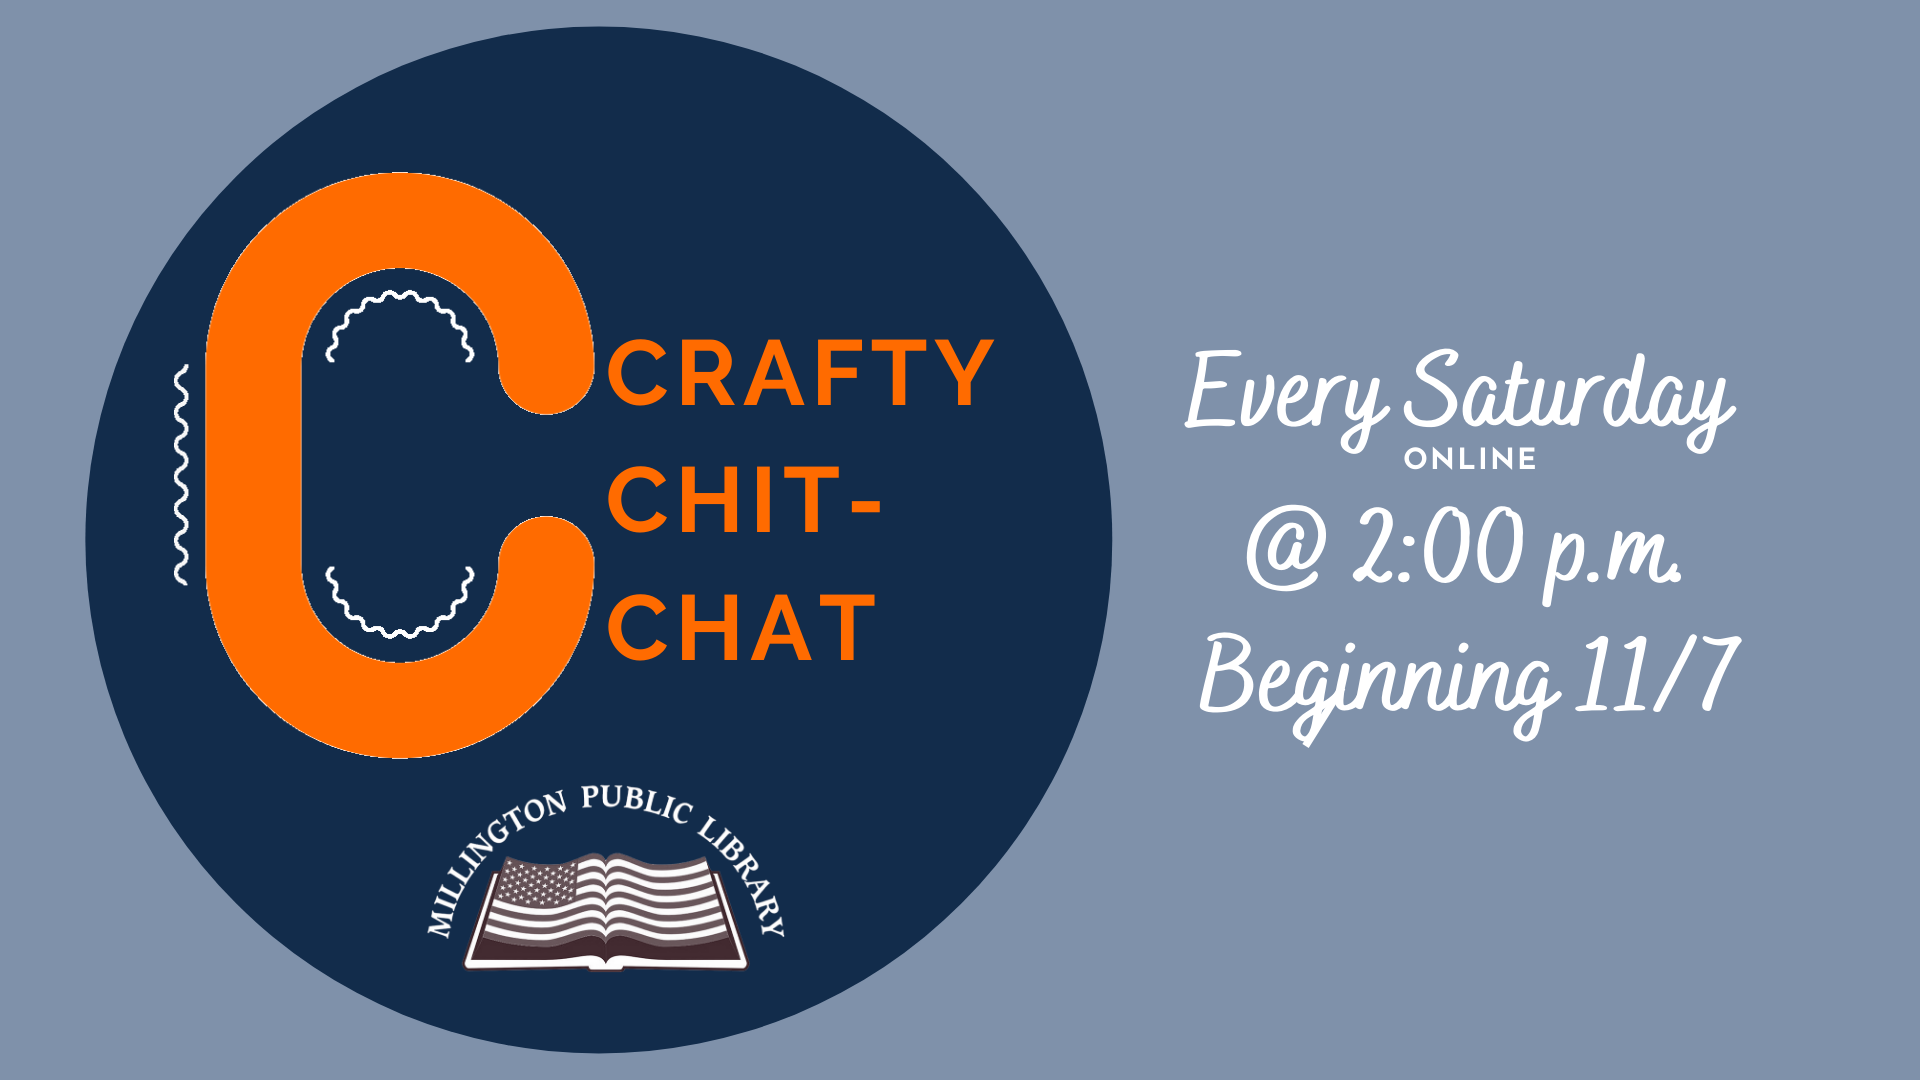 Crafty Chit-Chat logo